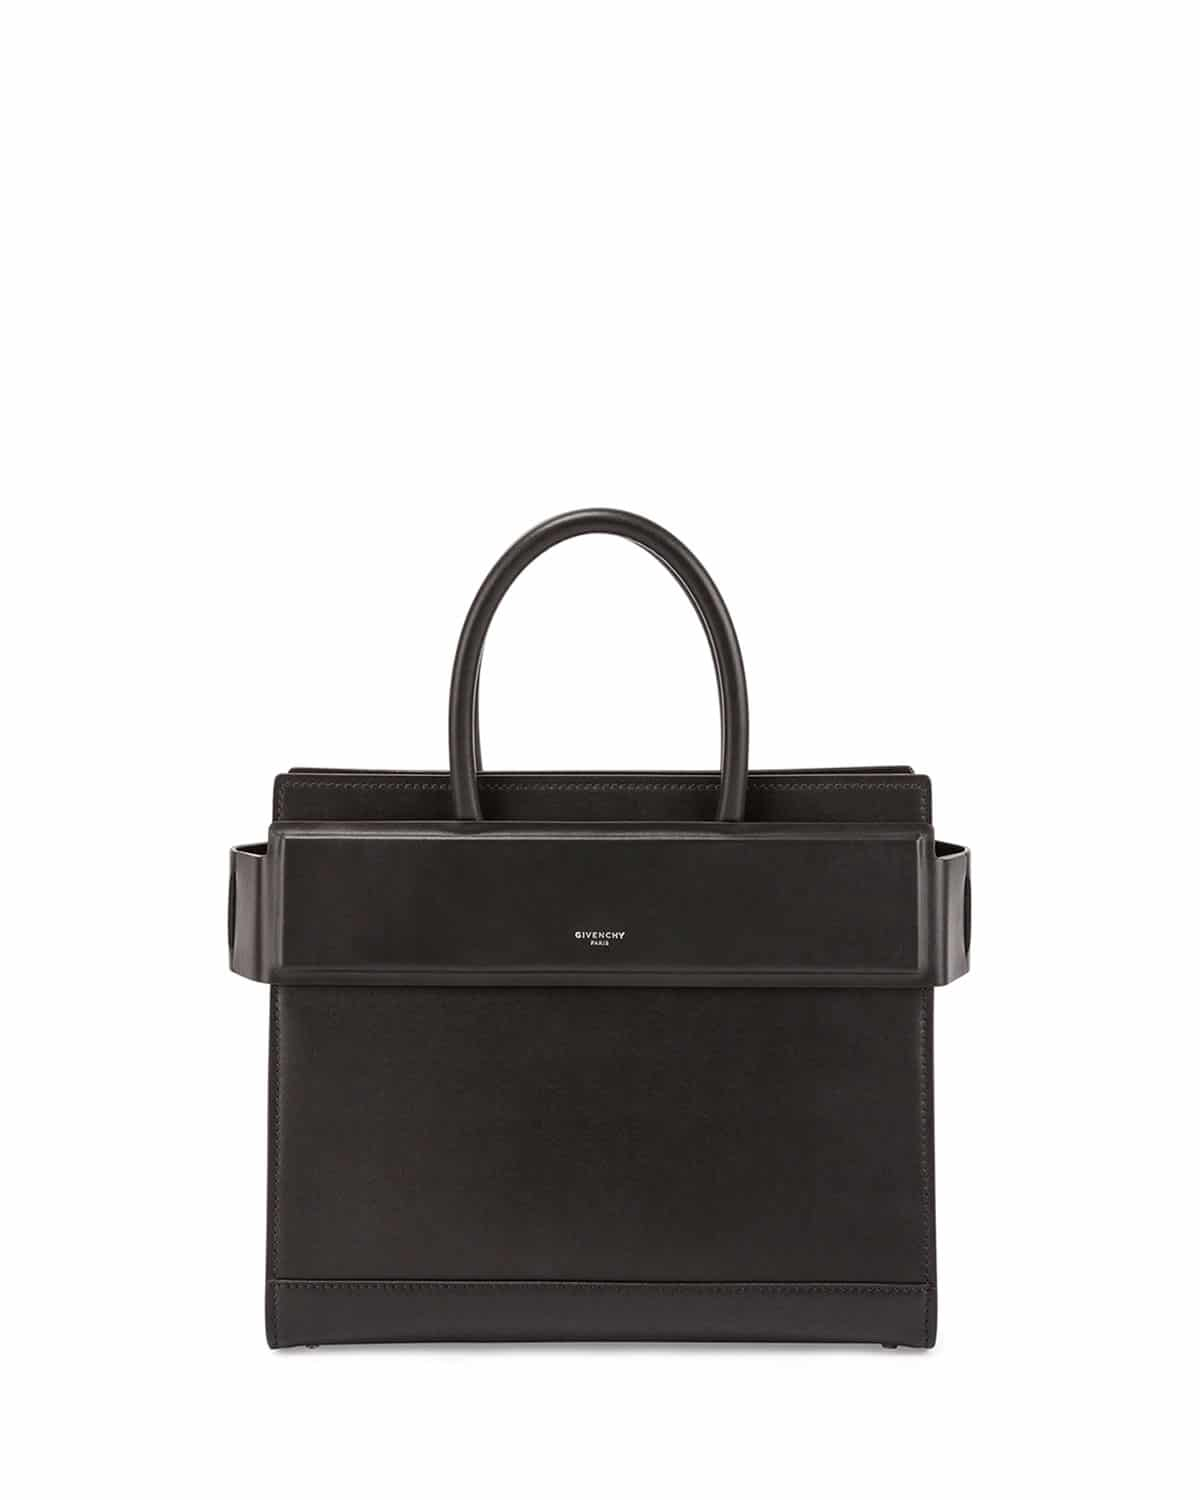 Givenchy bags collection 2017